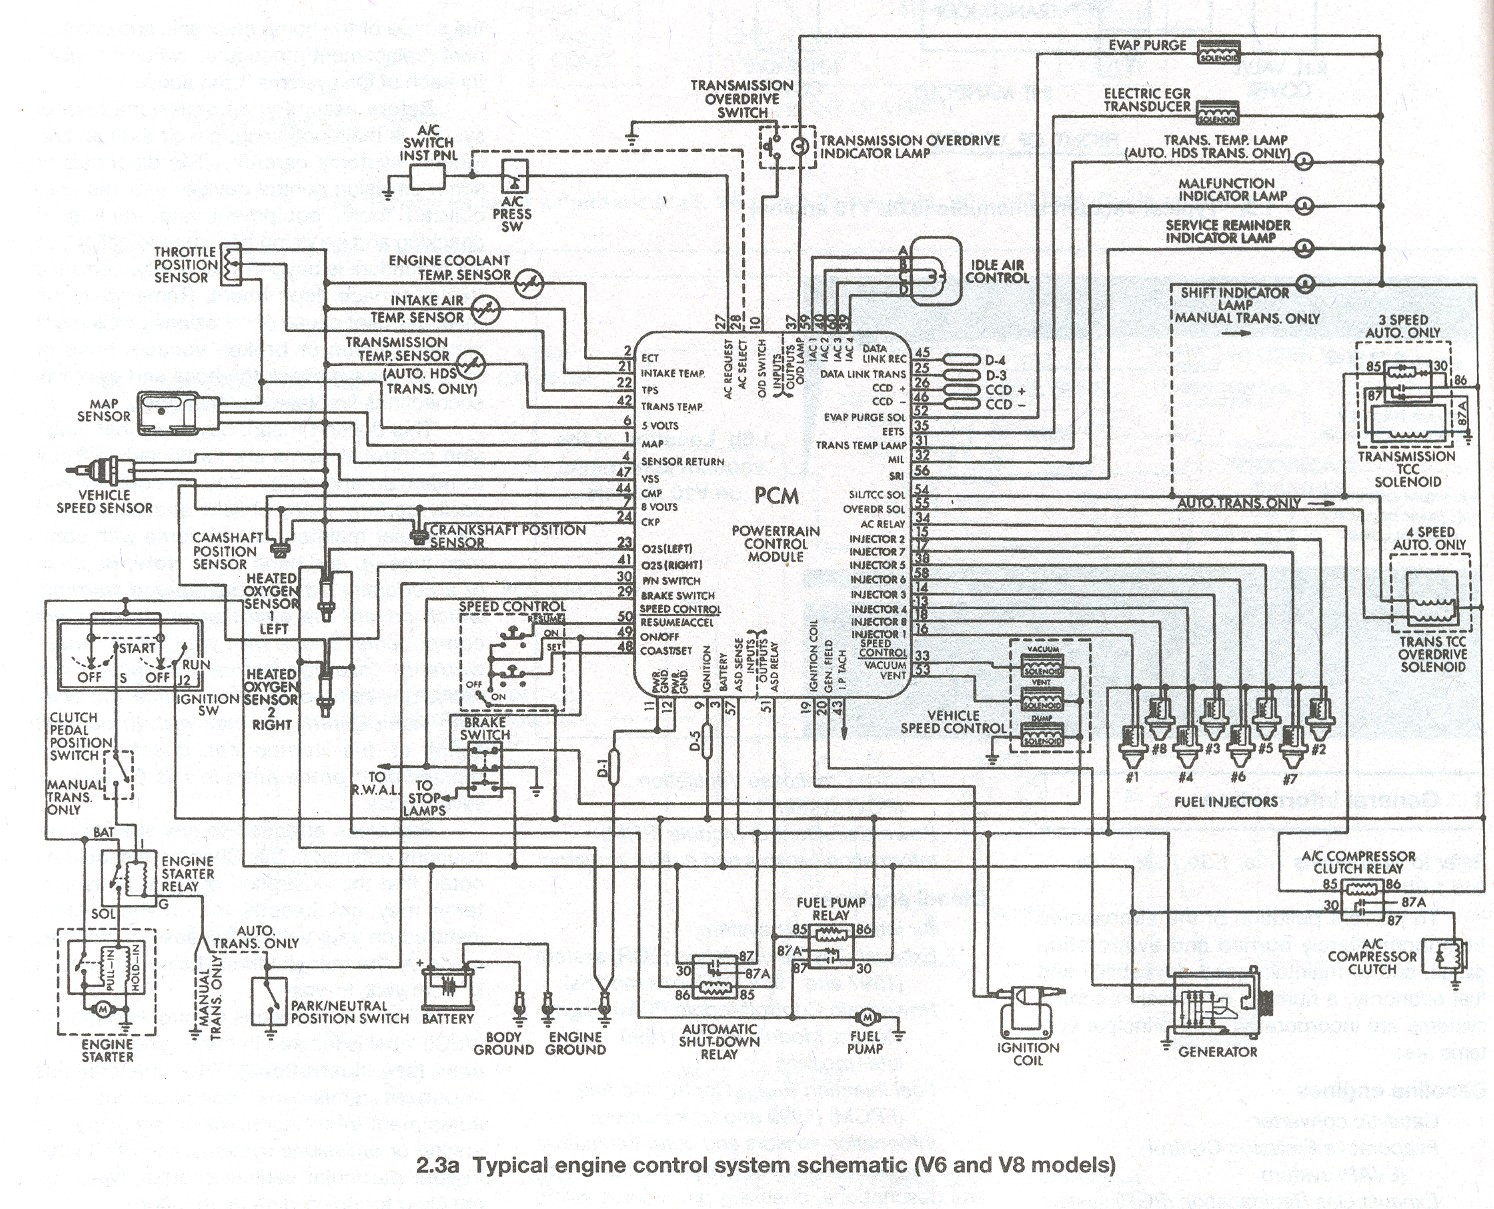 69 plymouth roadrunner wiring diagram best wiring library 1969 Satellite Wiring Diagram 1969 road runner wiring diagram wiring library rh 54 trgy org 69 dodge charger 71 plymouth